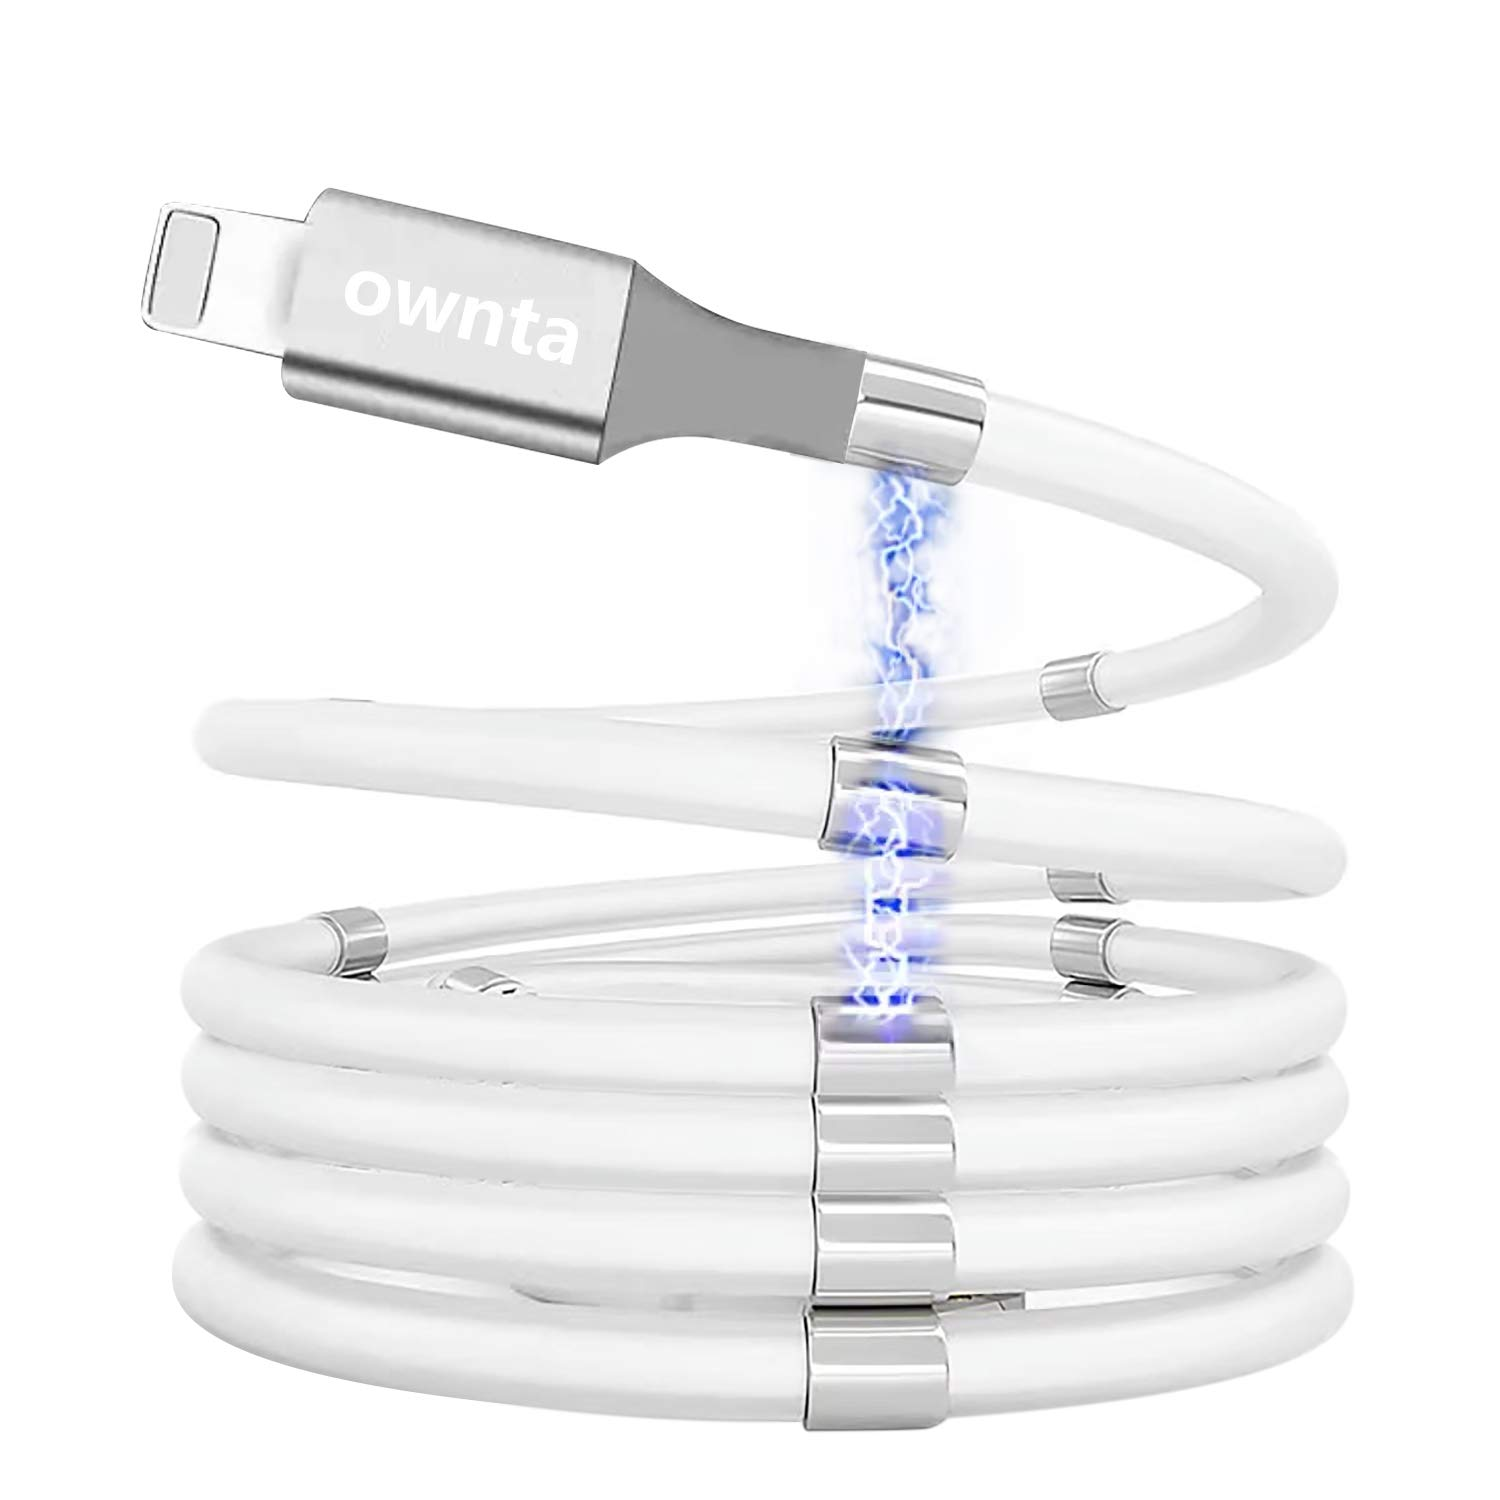 Magic Cable, ownta Magnetic Charging Cable, Lighting Charging Wire Redesigned Absorption Nano Data Cables Compatible with iPhone/Samsung/iPad Mobile Phones 3